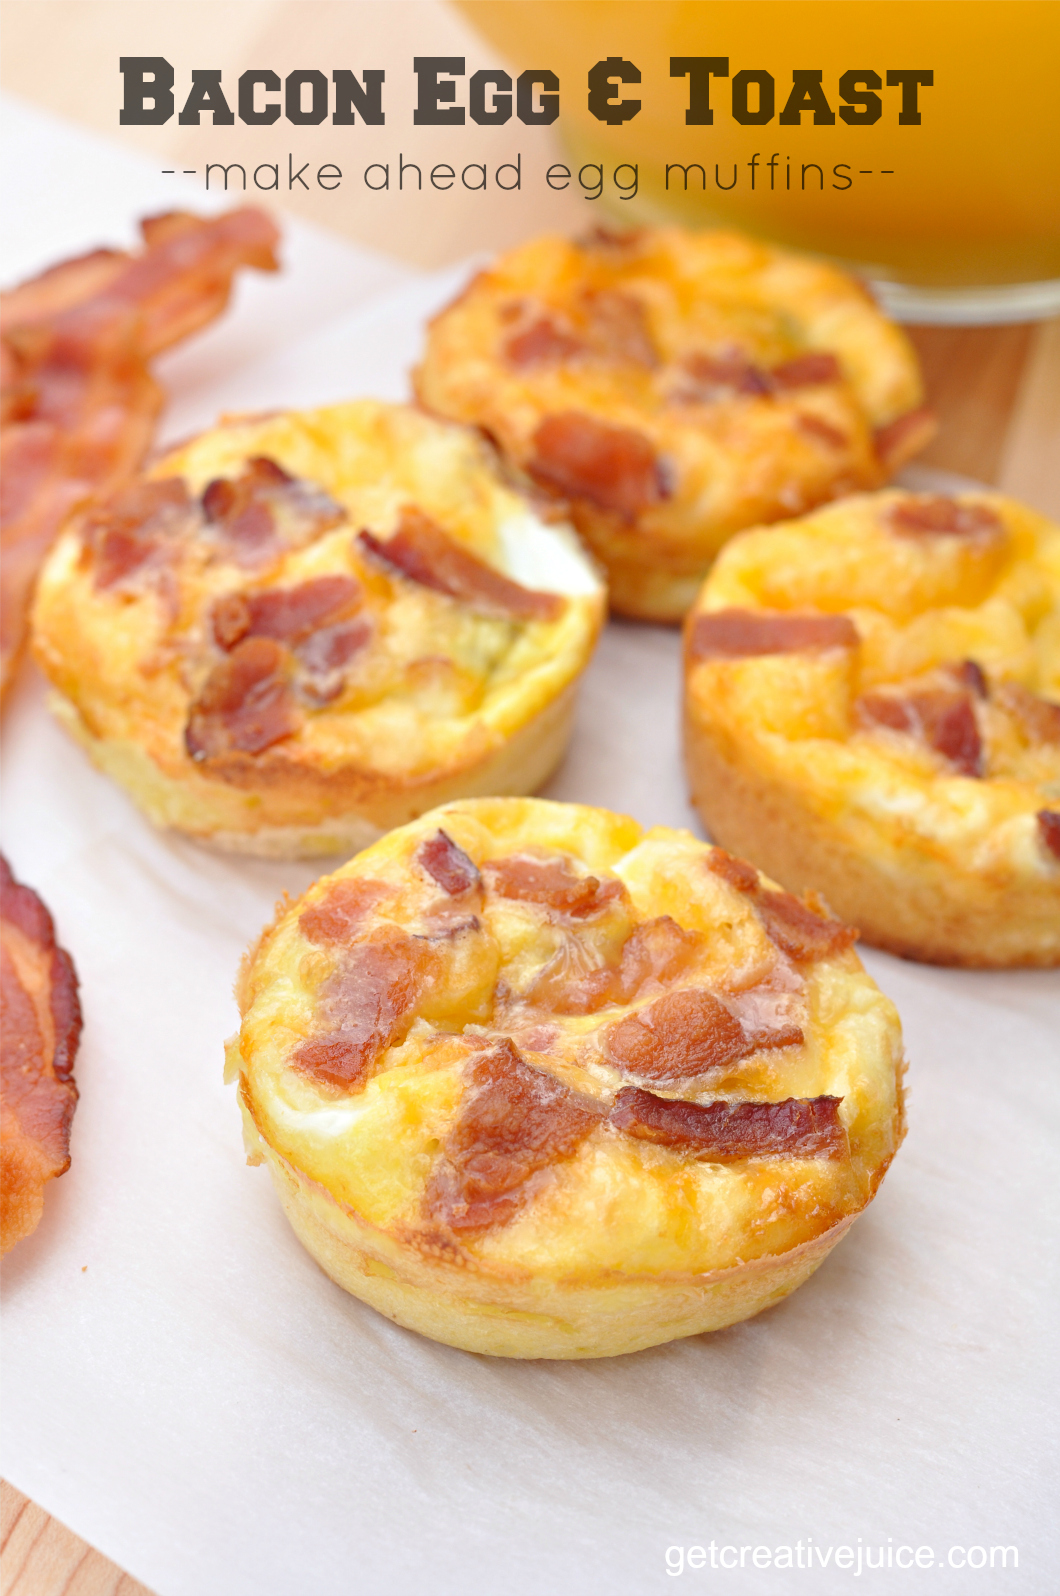 Healthy Breakfasts With Eggs And Bacon Breakfast Muffins Egg Bacon